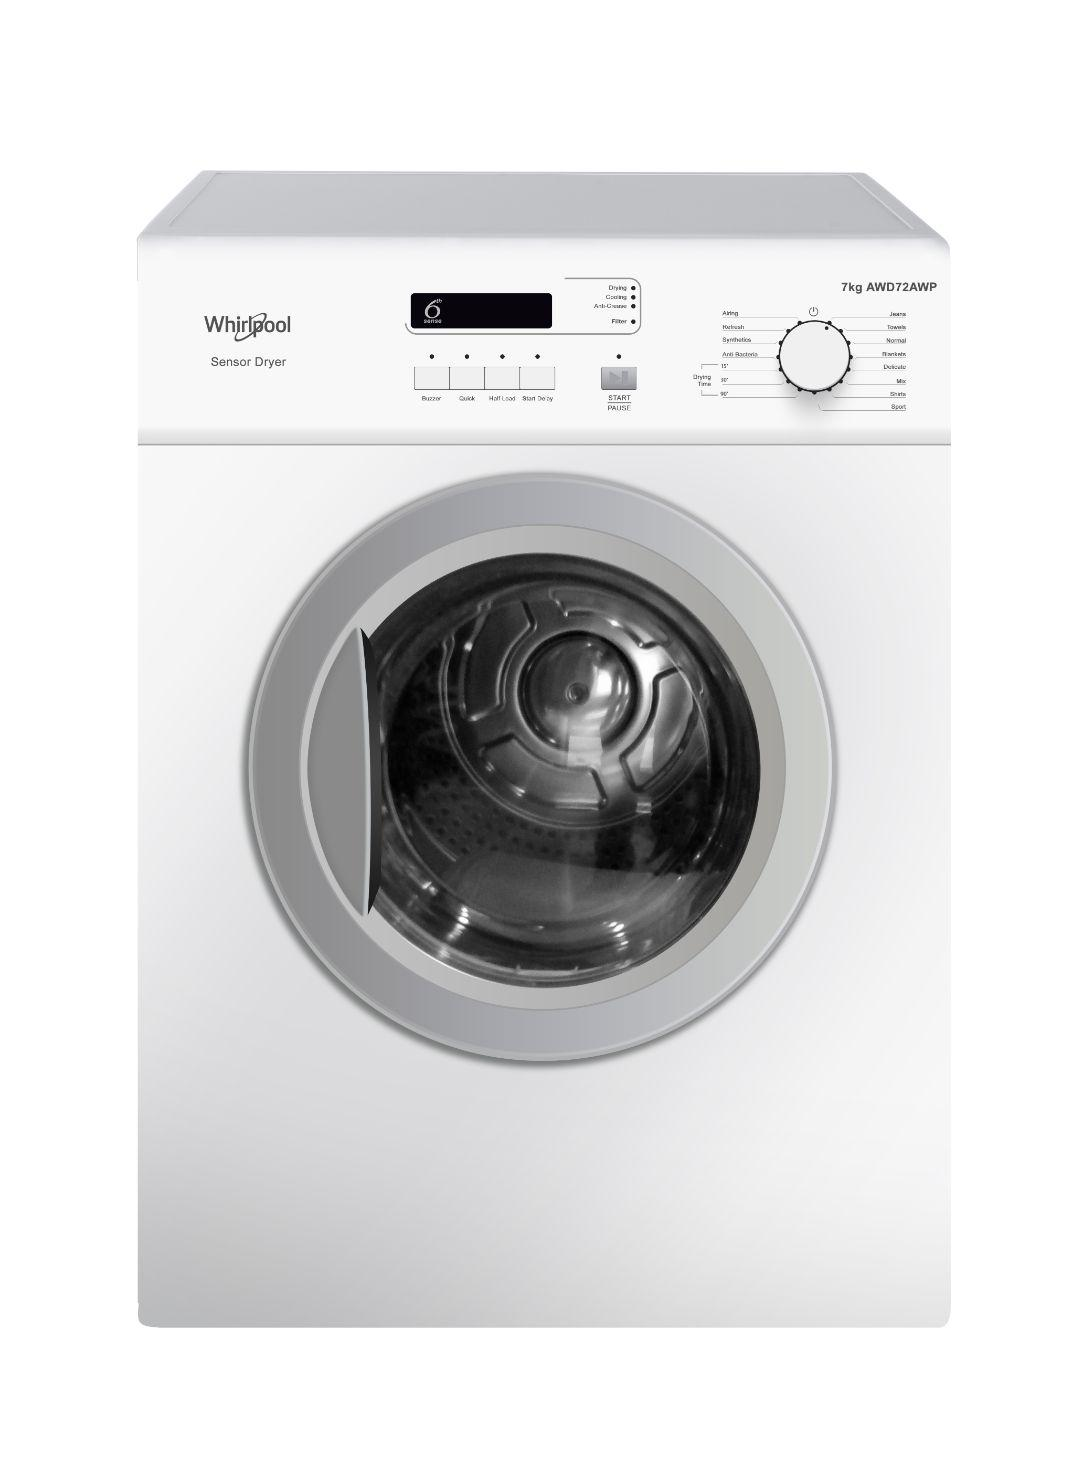 Whirlpool 7 2 kg  Front Load Dryer AWD 72 A WP (White)